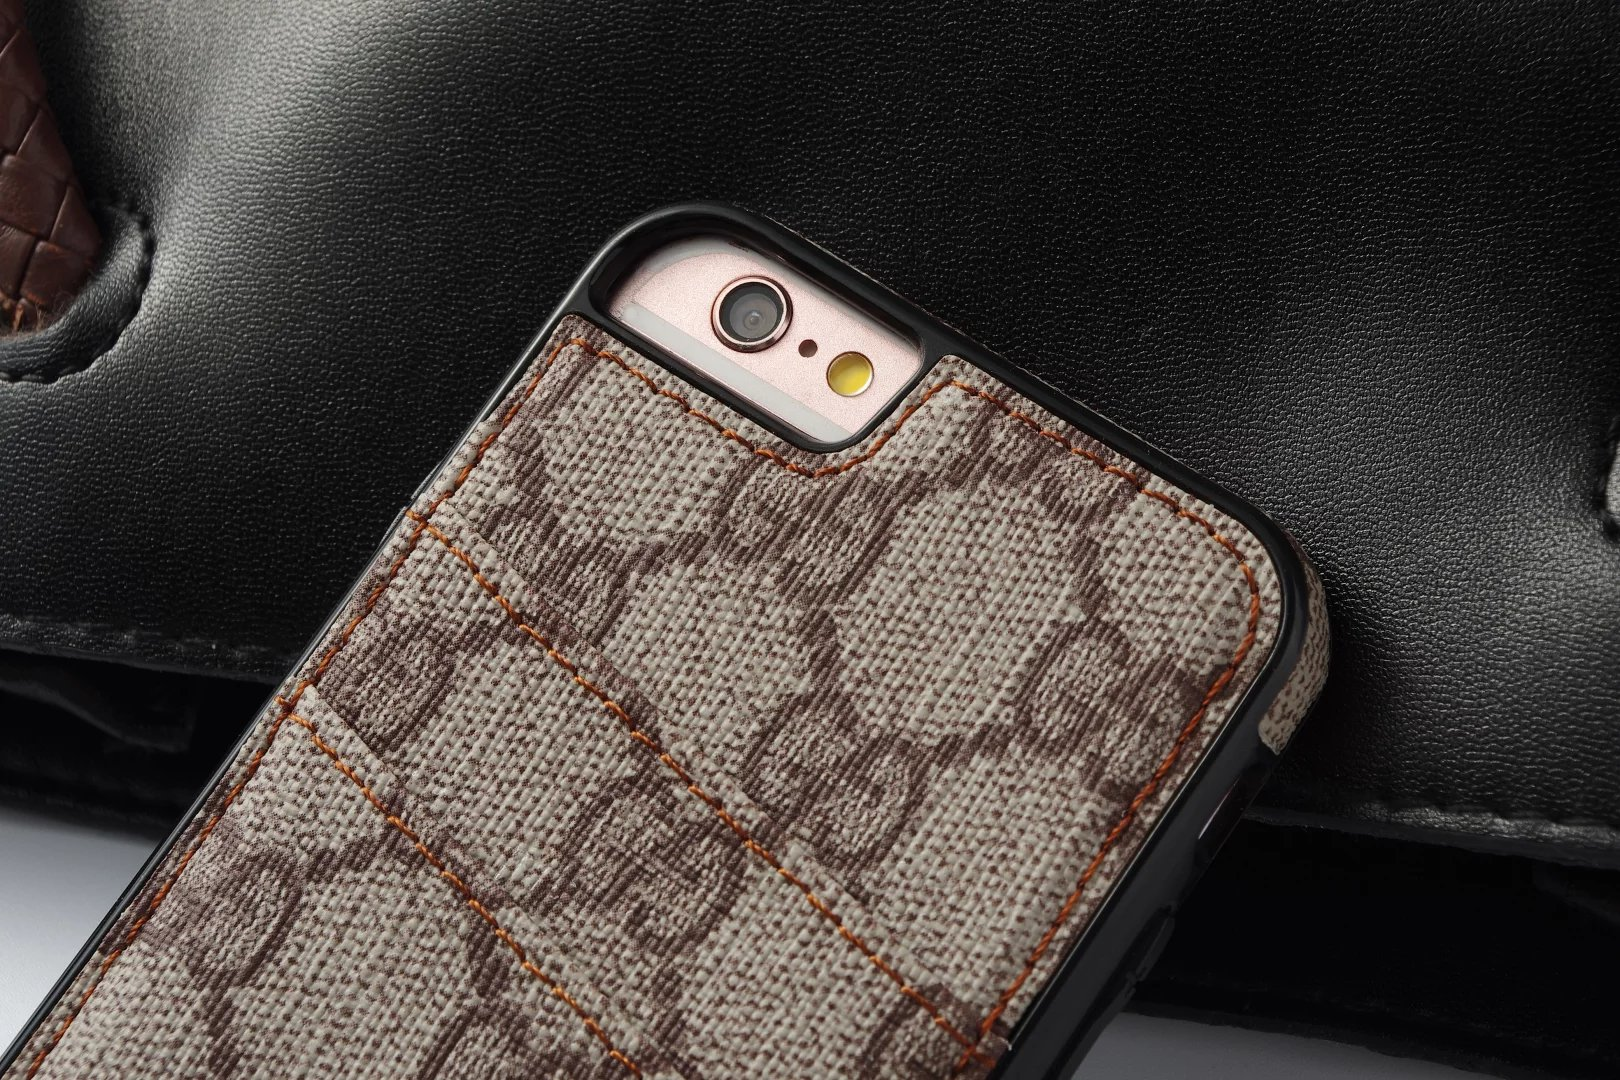 iphone handyhülle selbst gestalten iphone case selbst gestalten Louis Vuitton iphone 8 Plus hüllen iphone 8 Plus a8 Plus rot iphone 8 Plus hülle muster iphone hülle 3gs iphone 8 Plus hülle mit displayschutz handyhülle leder iphone 8 Plus iphone 8 Plus cover 8 Pluslbst gestalten